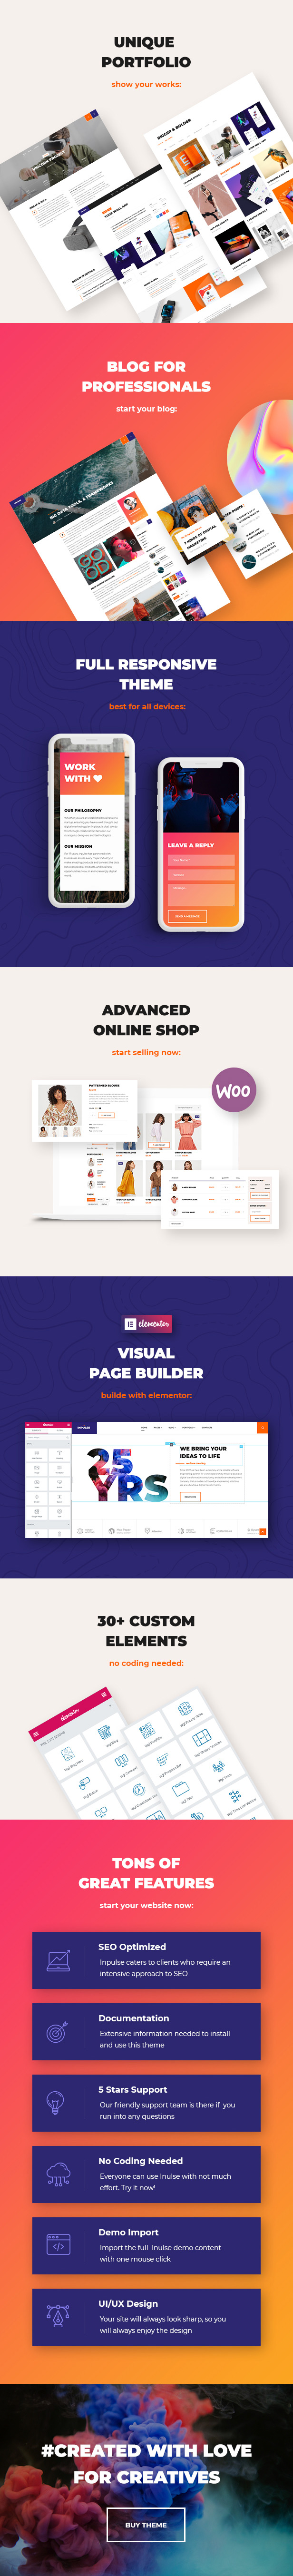 InPulse - Creative Agency WordPress Theme - 2